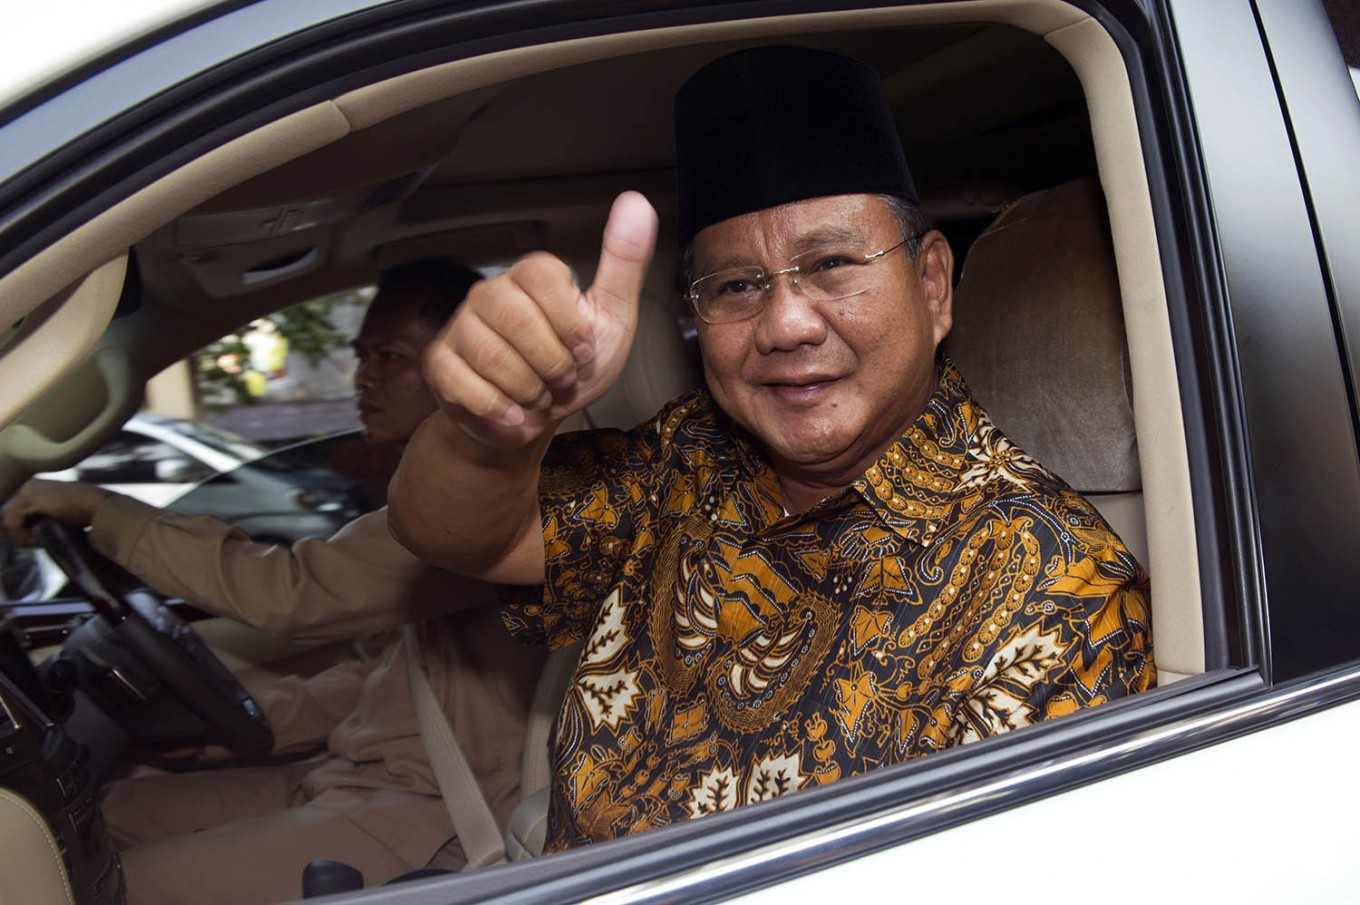 Prabowo's presidential bid hangs in the balance